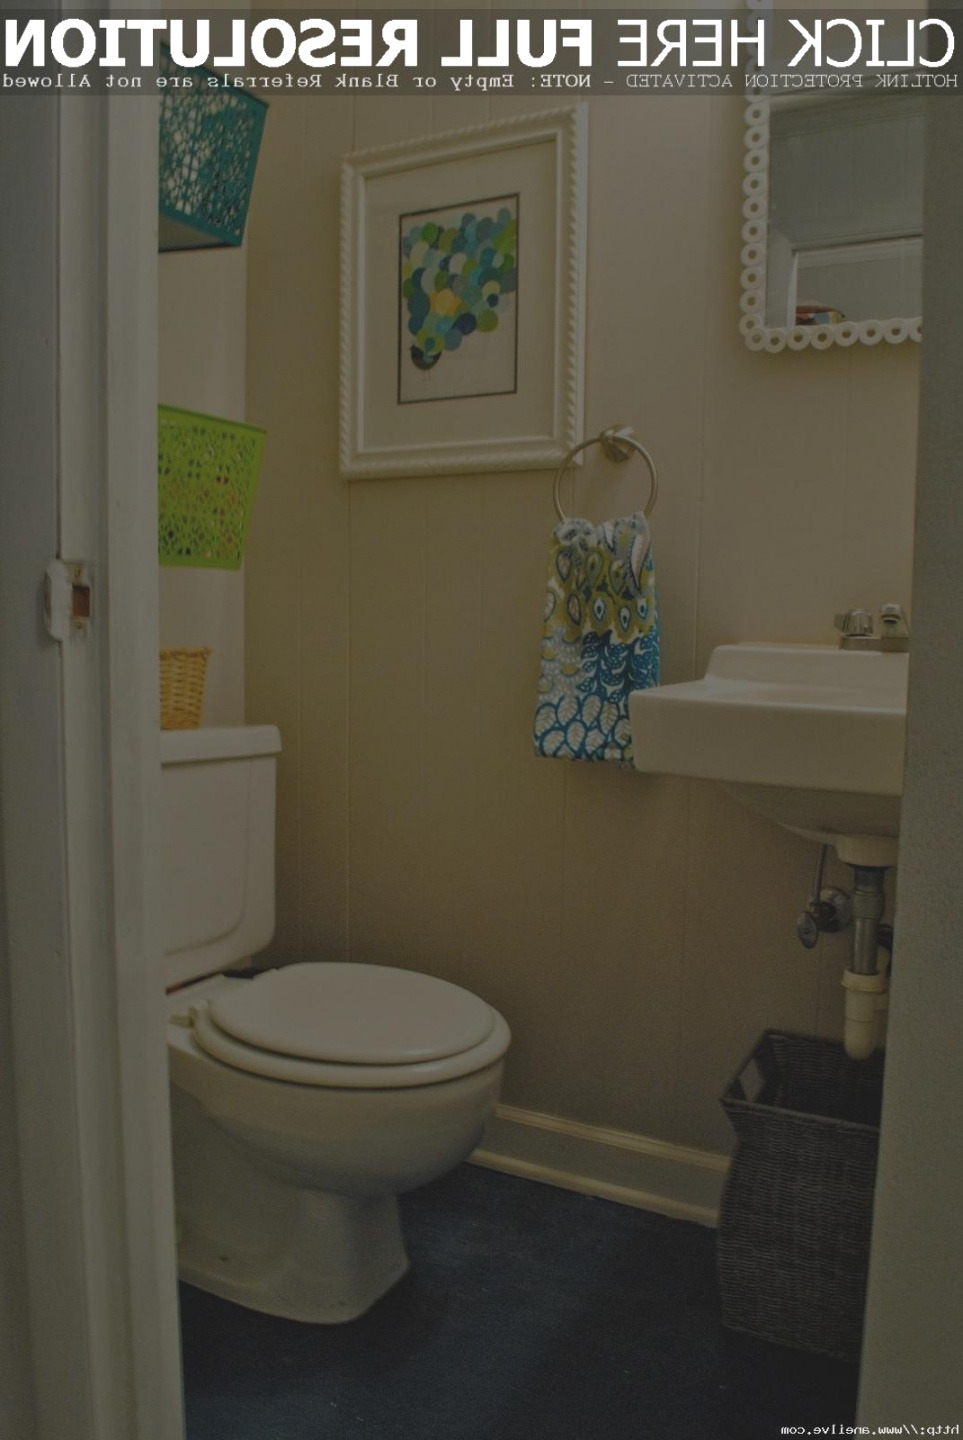 Bathroom Decorating themes Luxury 12 Reliable sources to Learn About Decorating